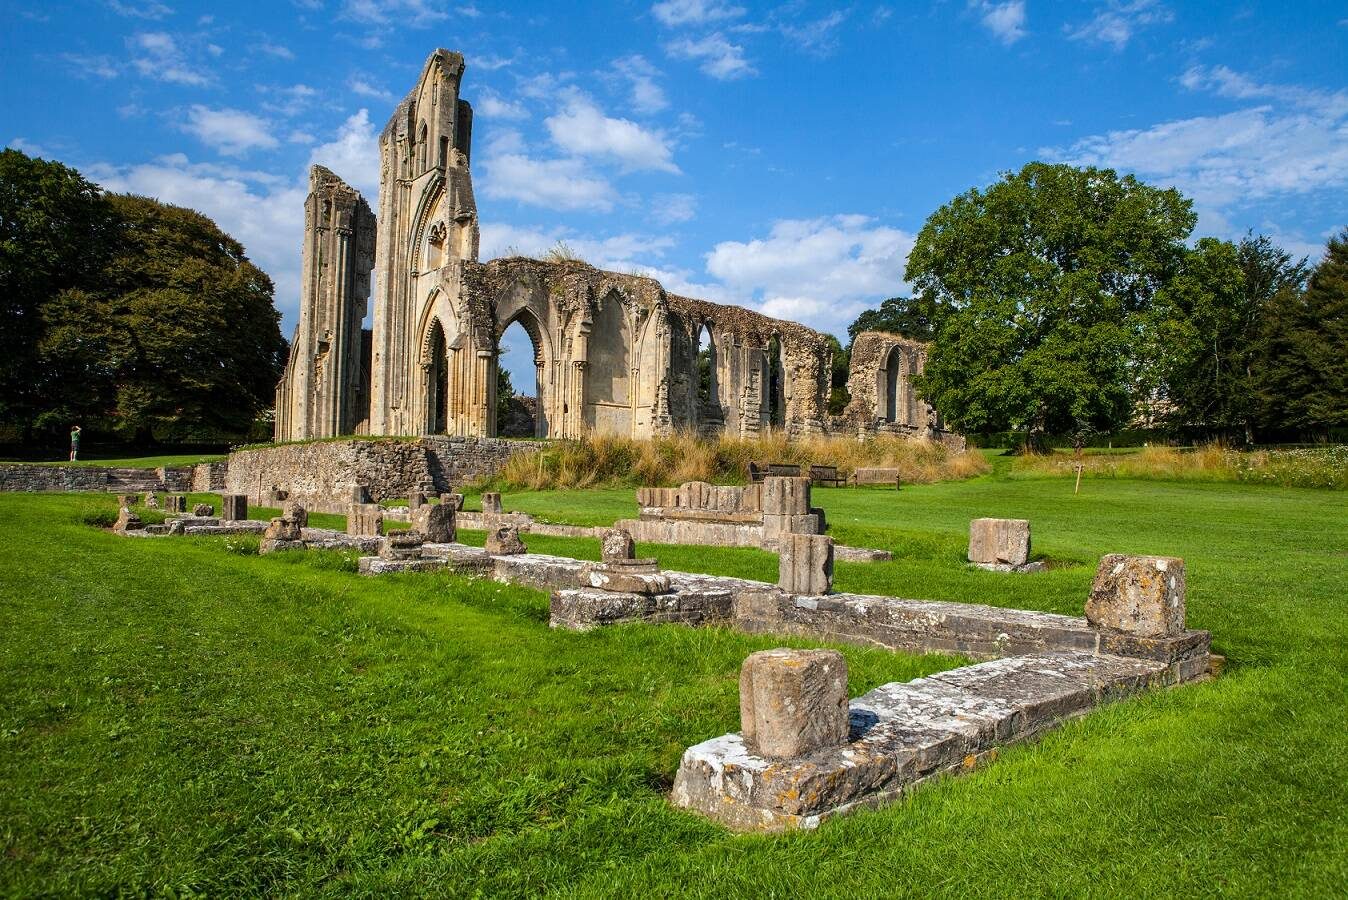 Who is buried at Glastonbury Abbey